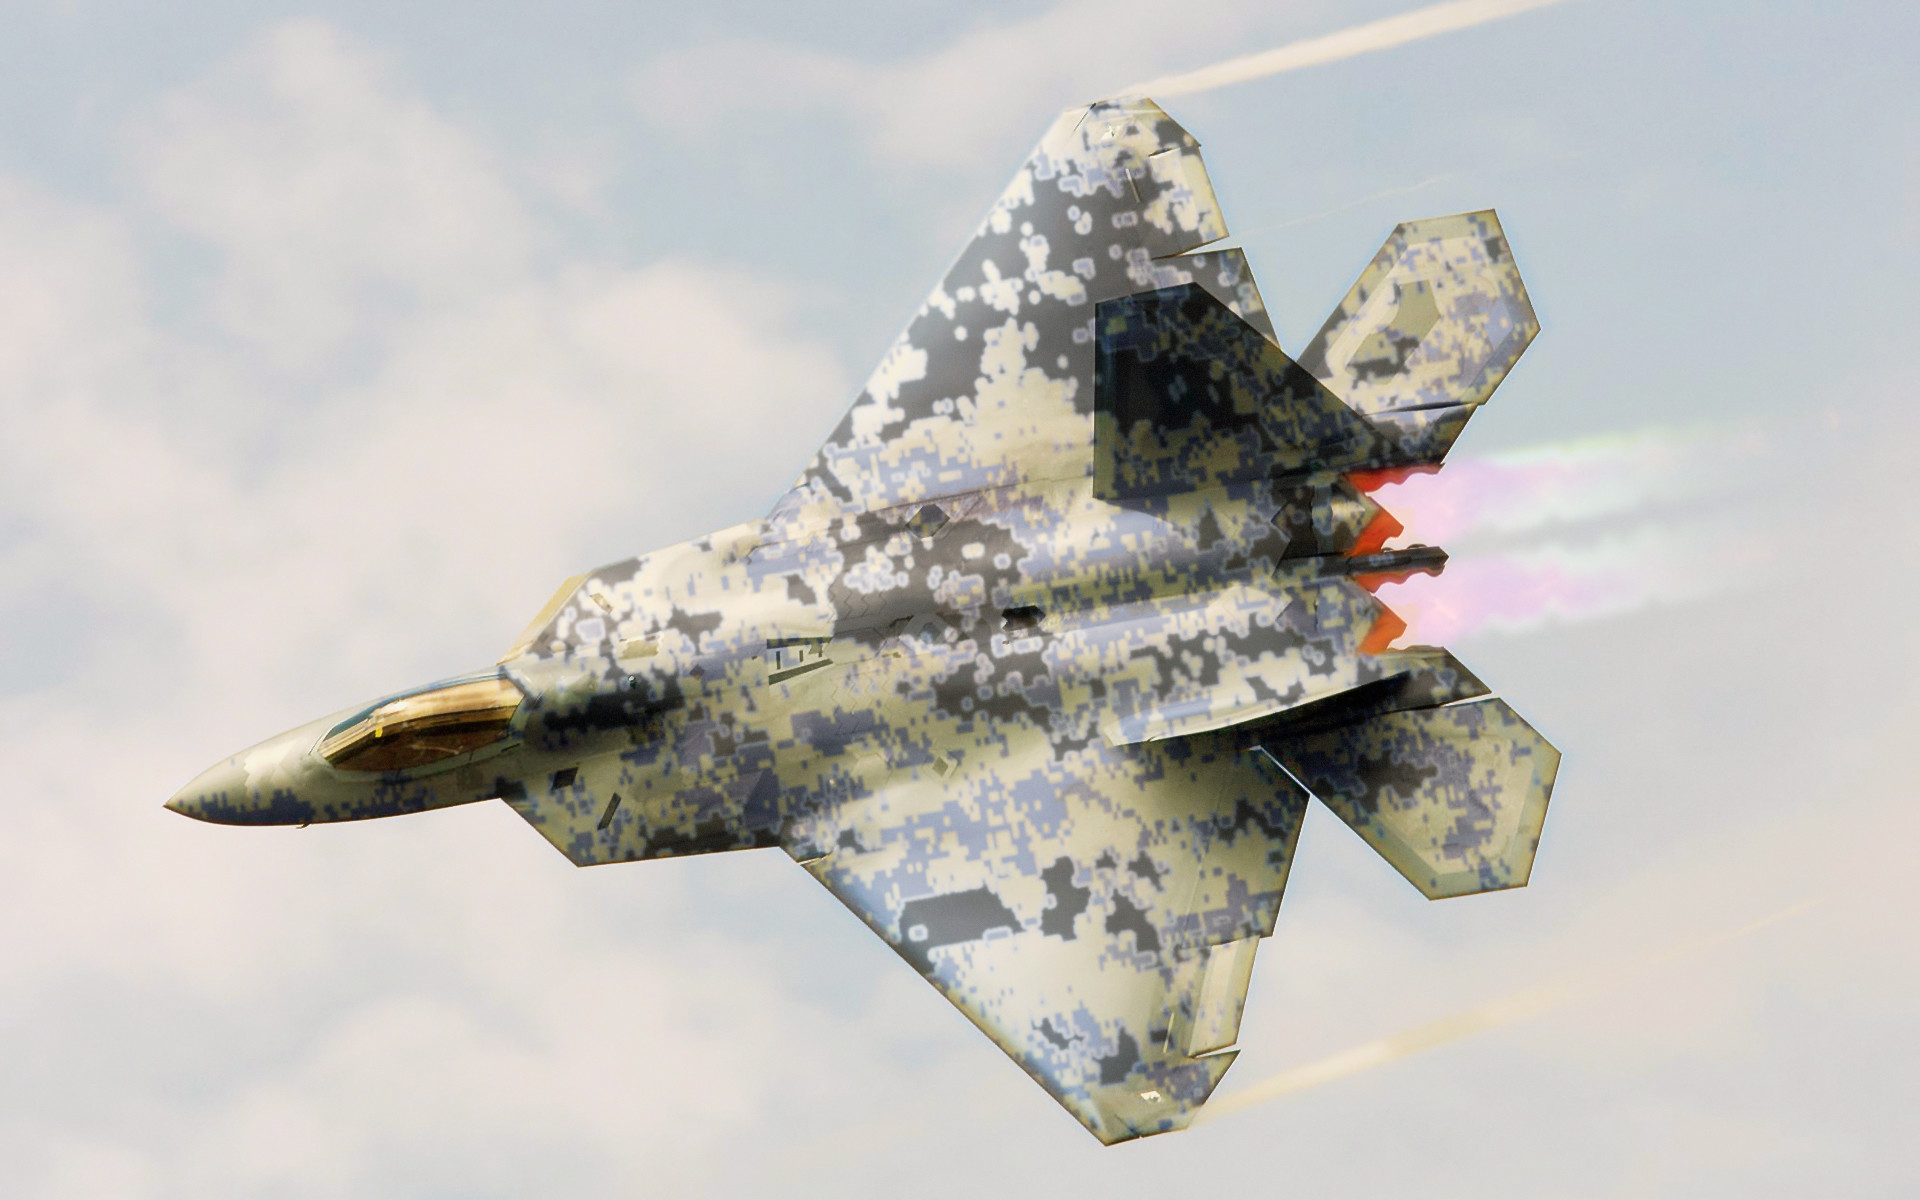 1920x1200 F-22 Raptor Fighter Aircraft | HD Wallpapers · 4K ...